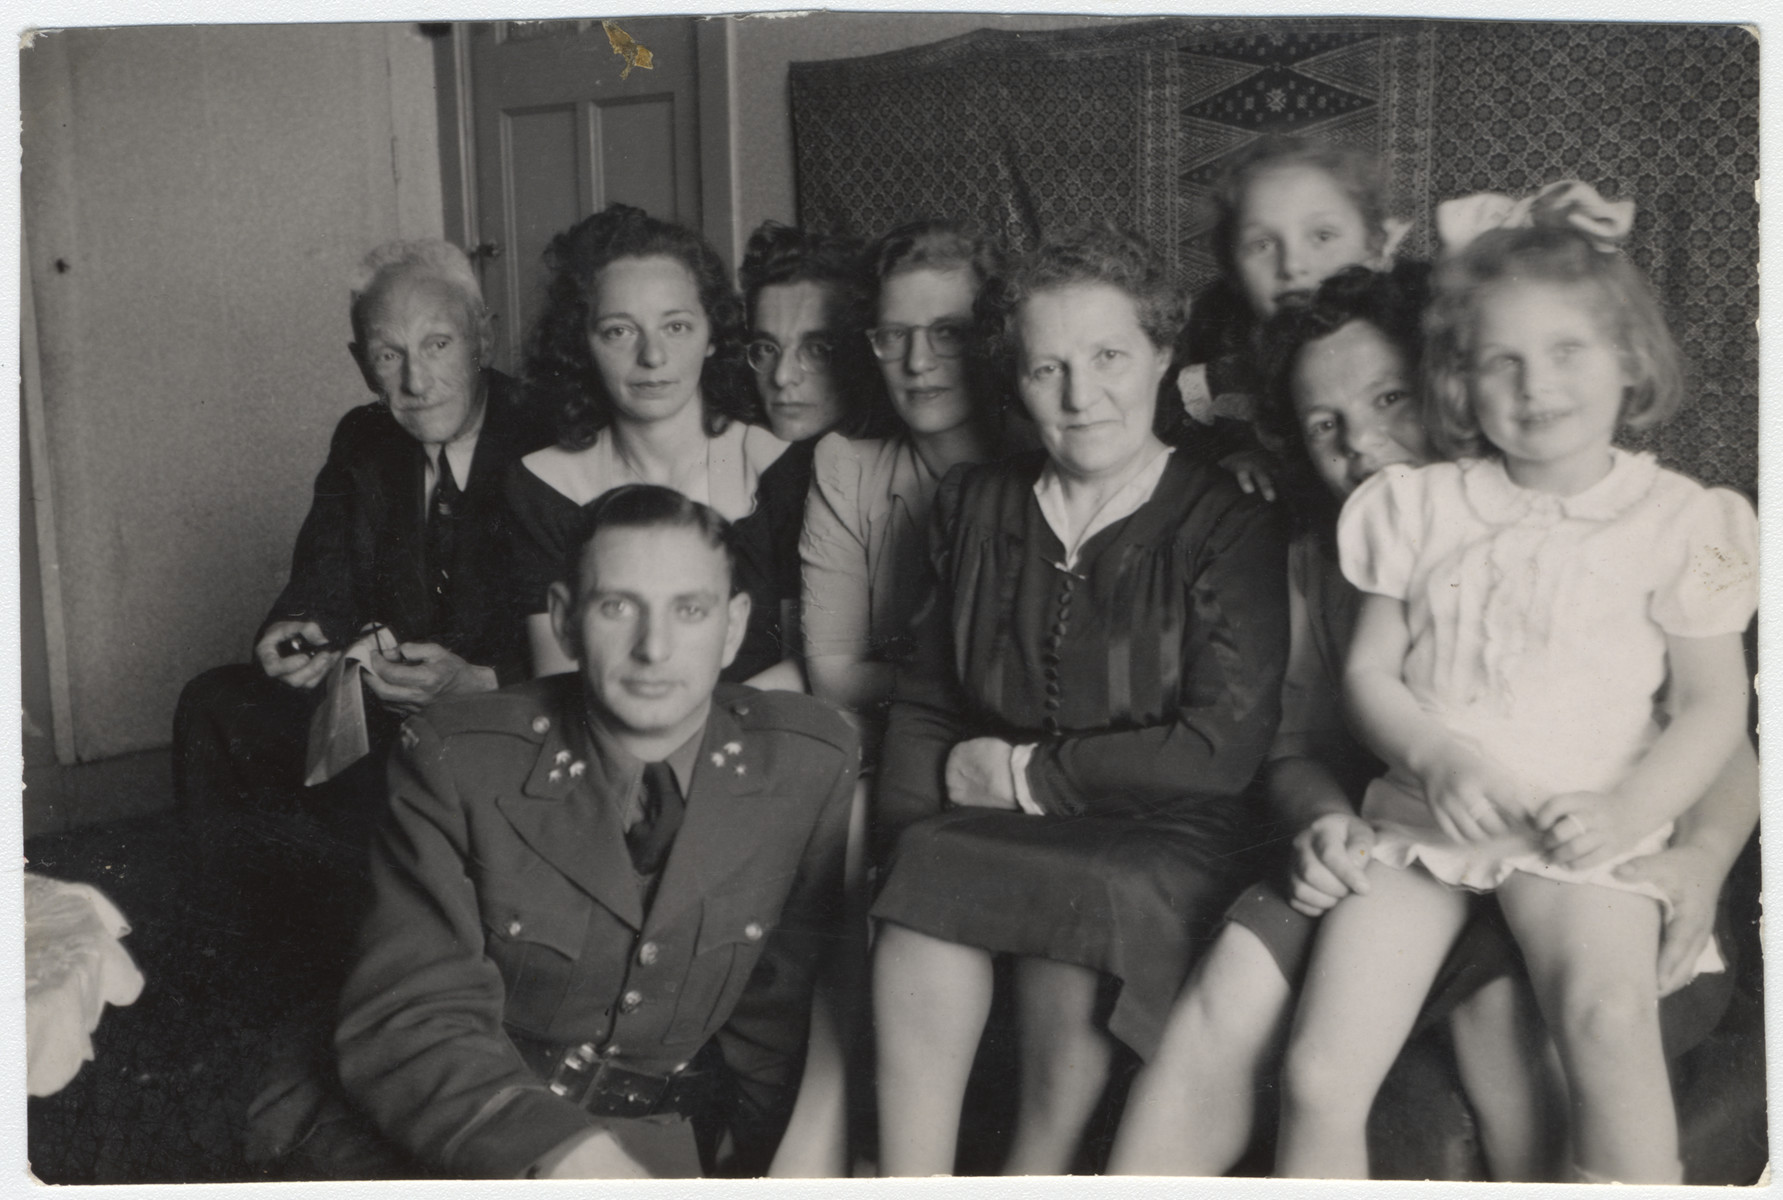 Postwar family of a Dutch Jewish family.  Pictured on the left is Sigmund Kleerkoper in his army uniform and his wife seated behind him.  Their older daughter Marjetta is in the back and Elisabeth is in the front, right.